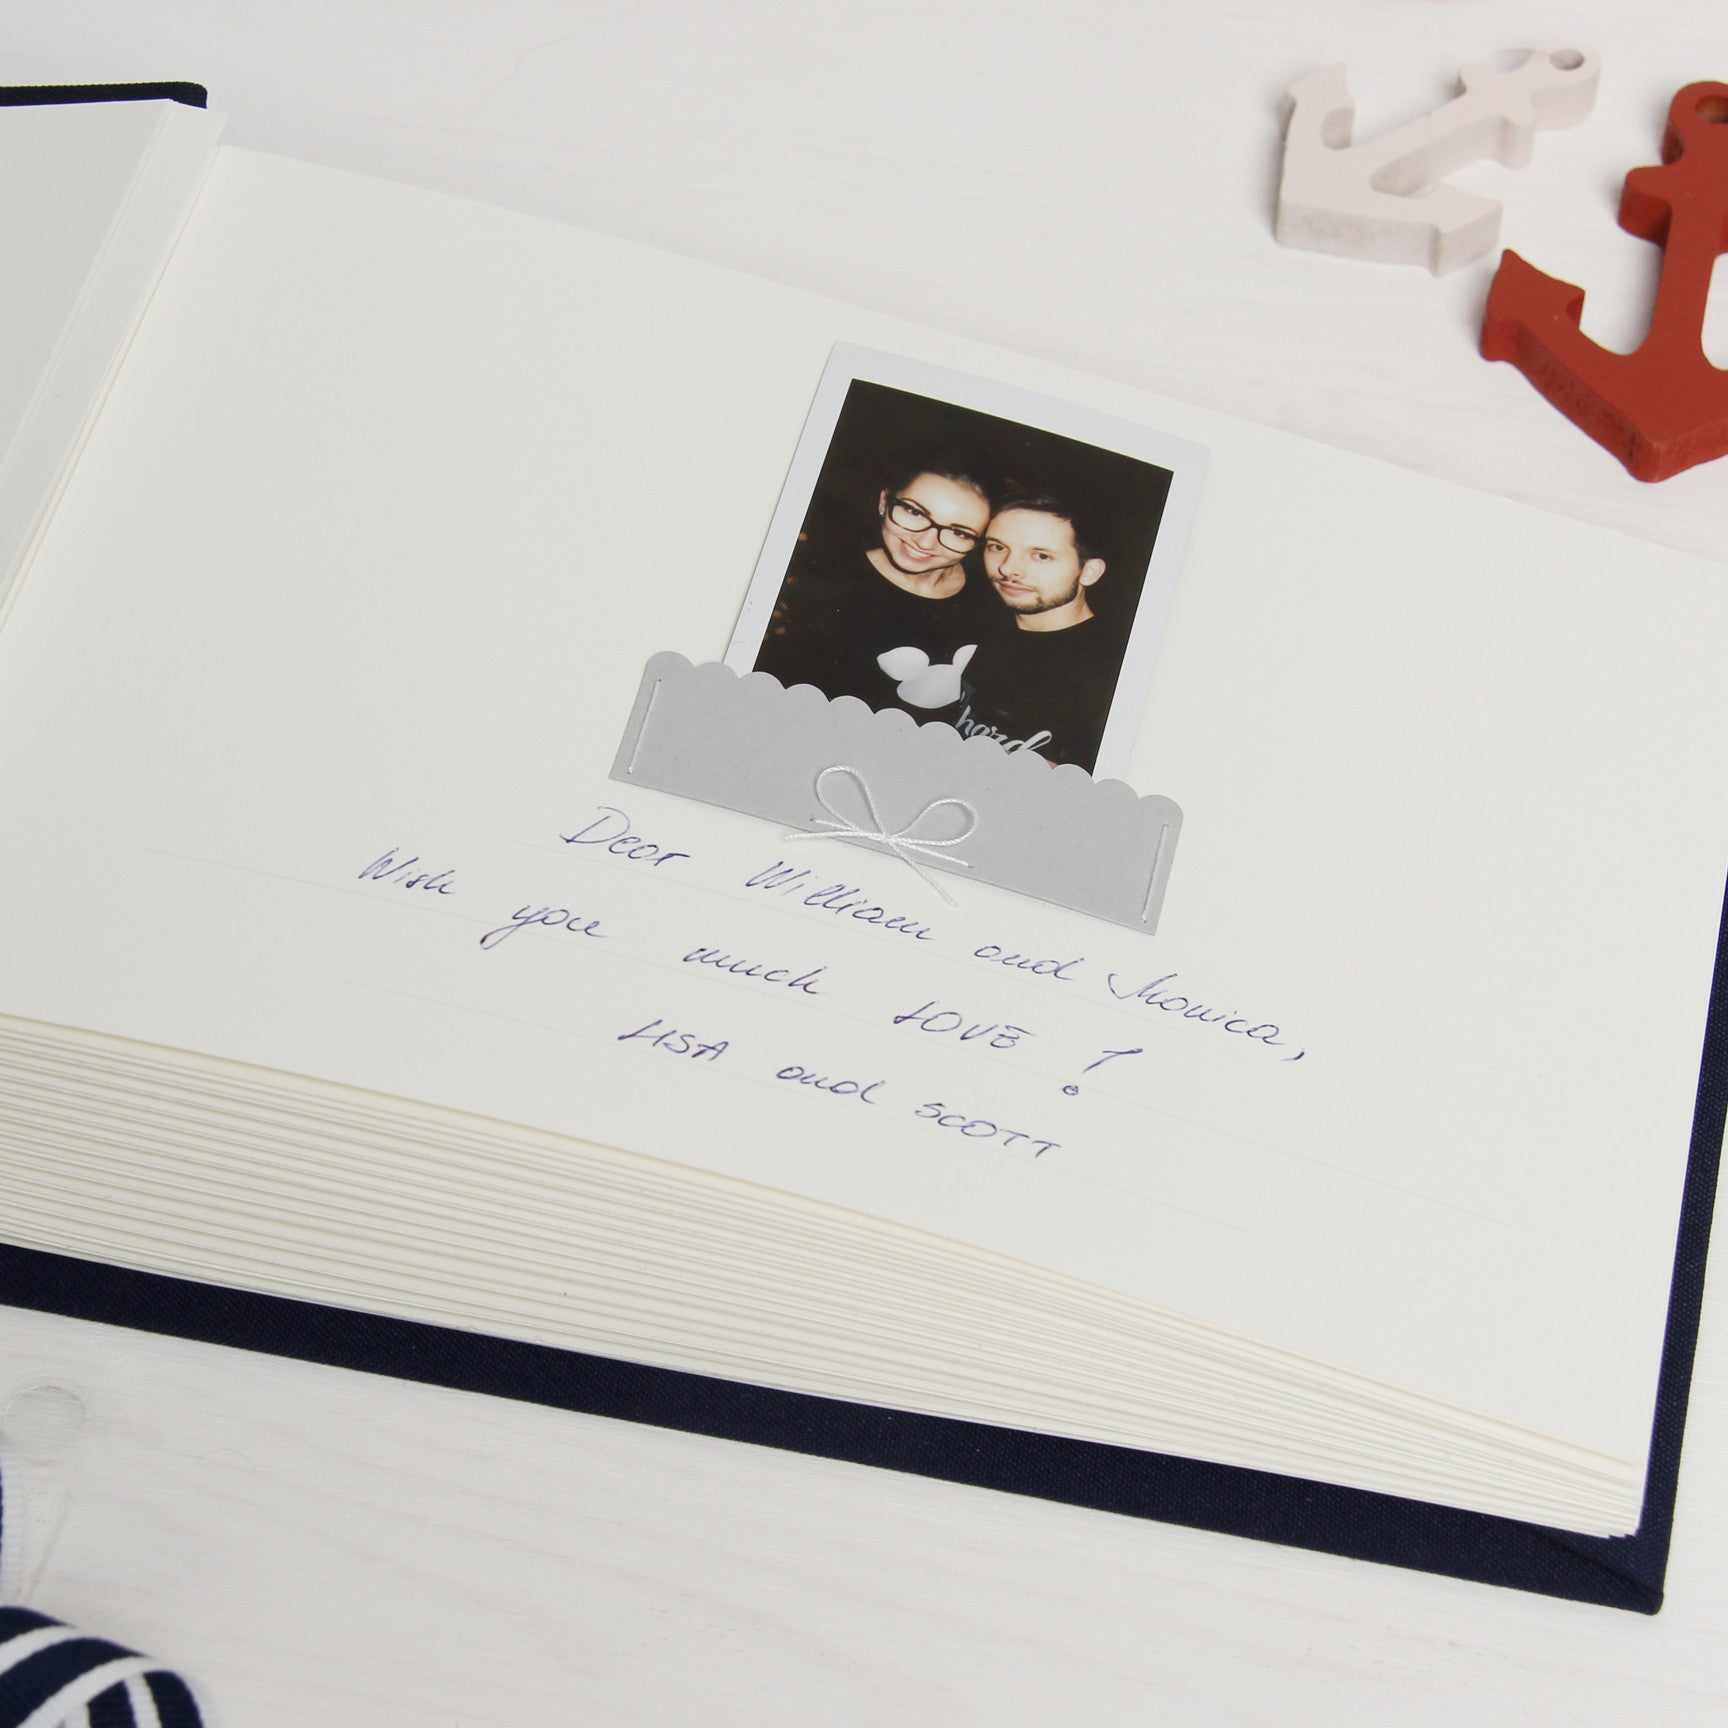 Instax Nautical Wedding Guest Sign In Book Album With White Lettering